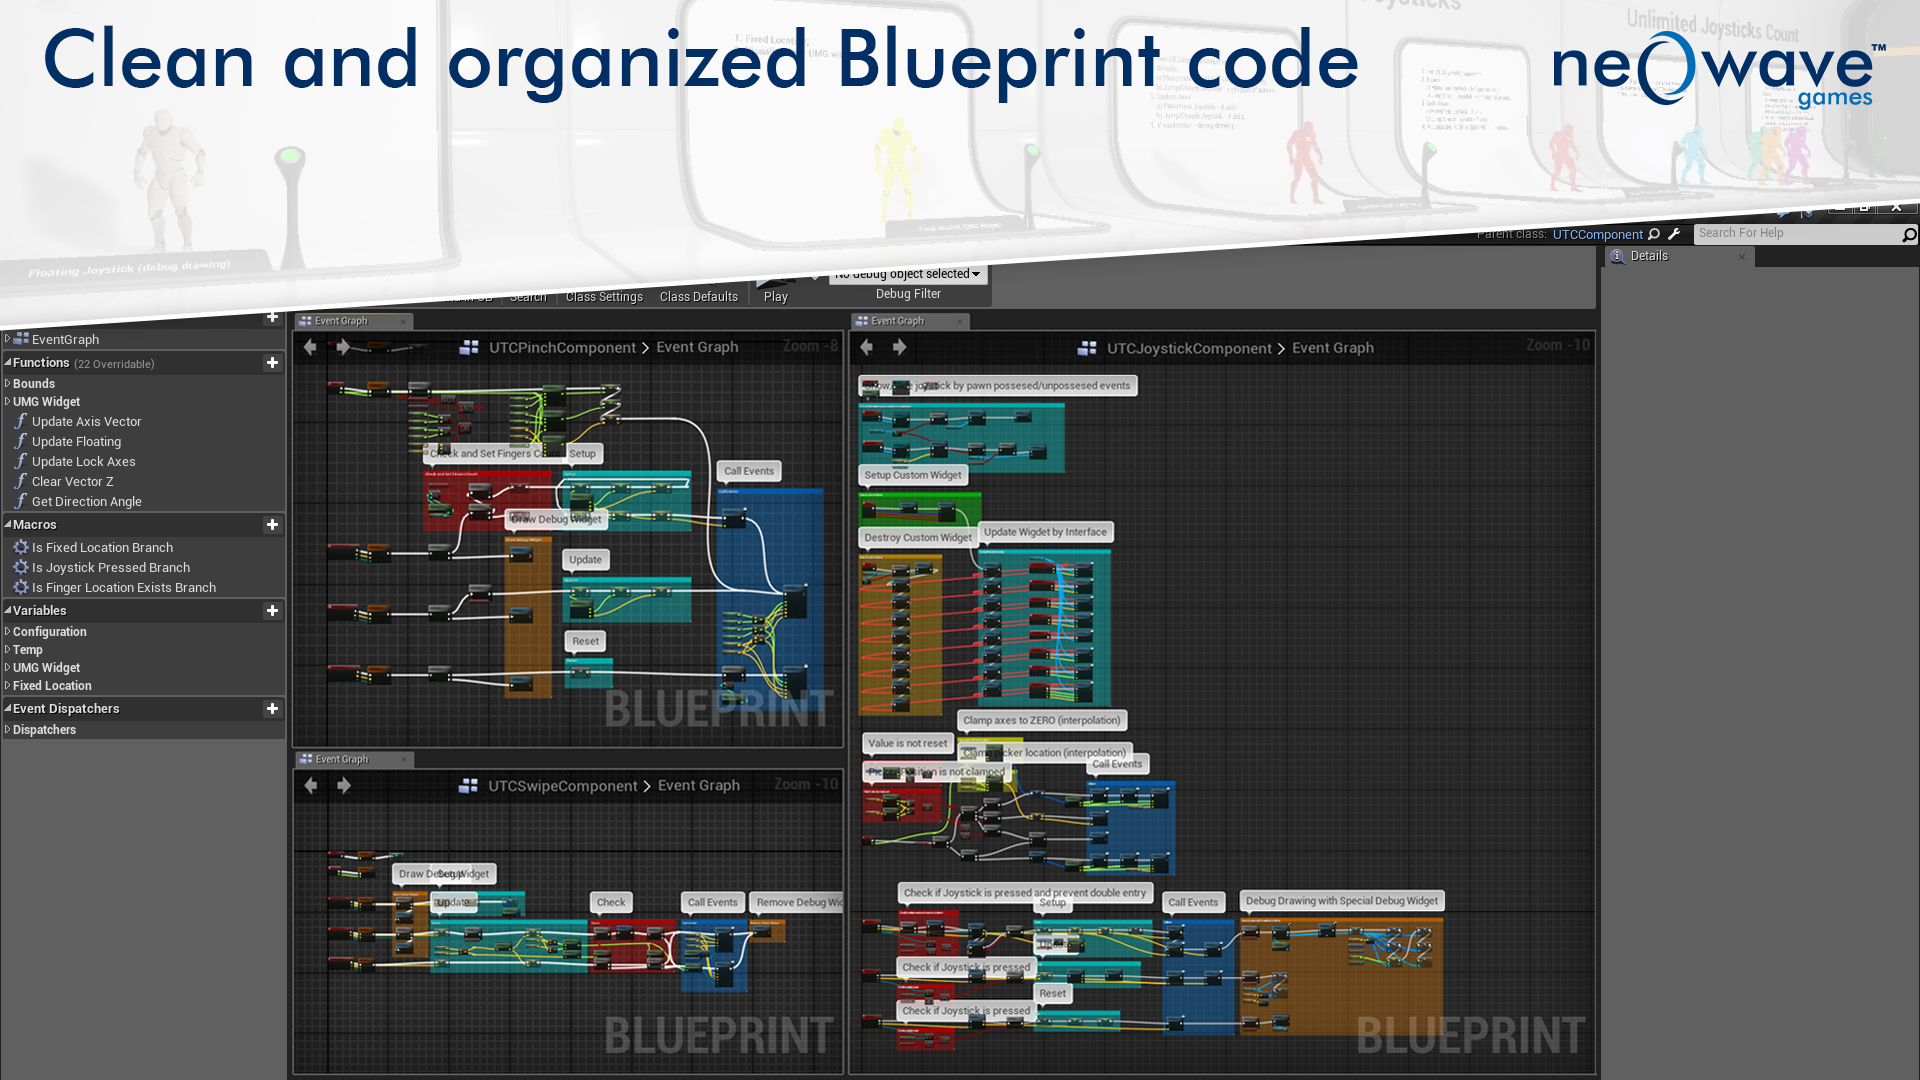 Ultimate touch components by neo wave games in blueprints ue4 share malvernweather Images